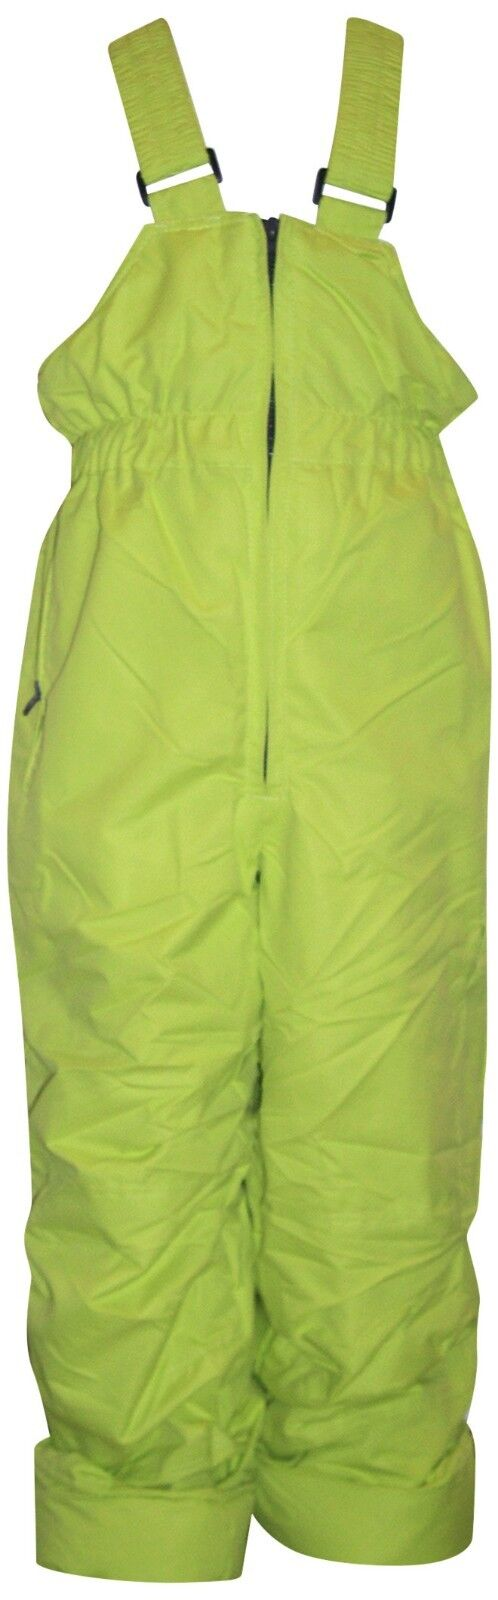 NEW Pulse Girls or Boys Ski Snow Bibs L 7 Pants Lime Insulat